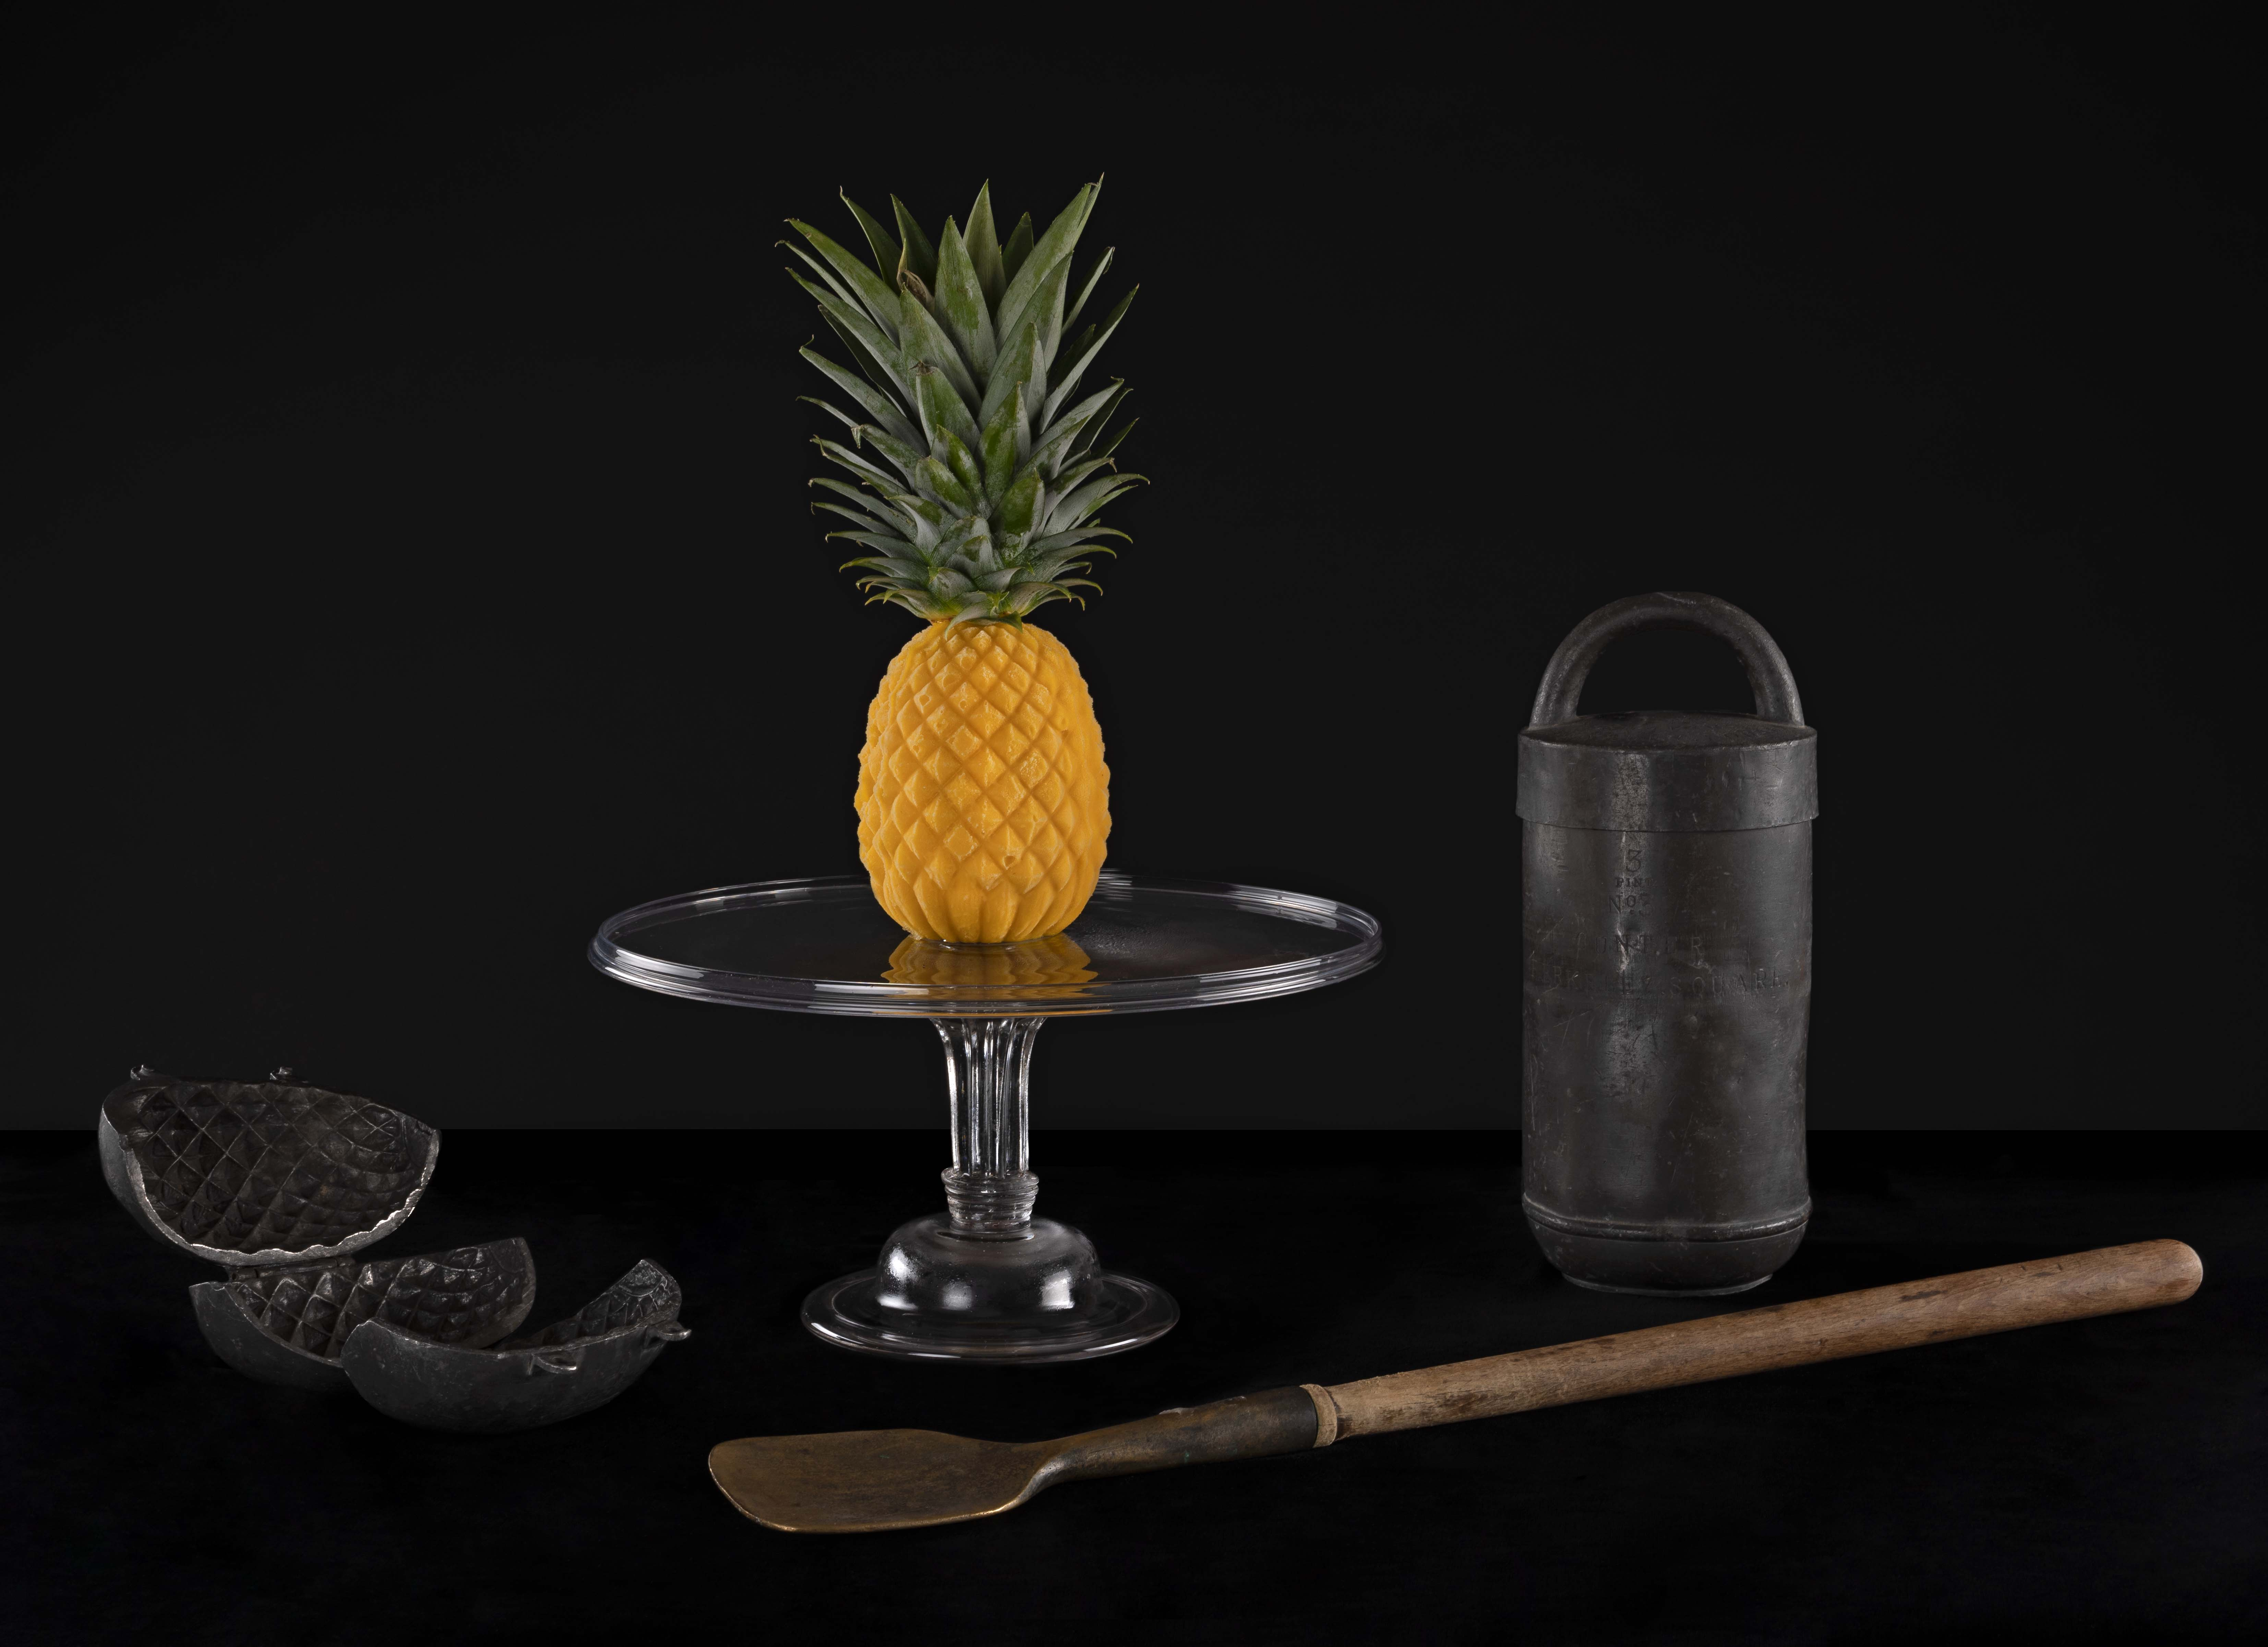 Ice cream pineapple made by Ivan Day, using an eighteenth century English pewter mould.